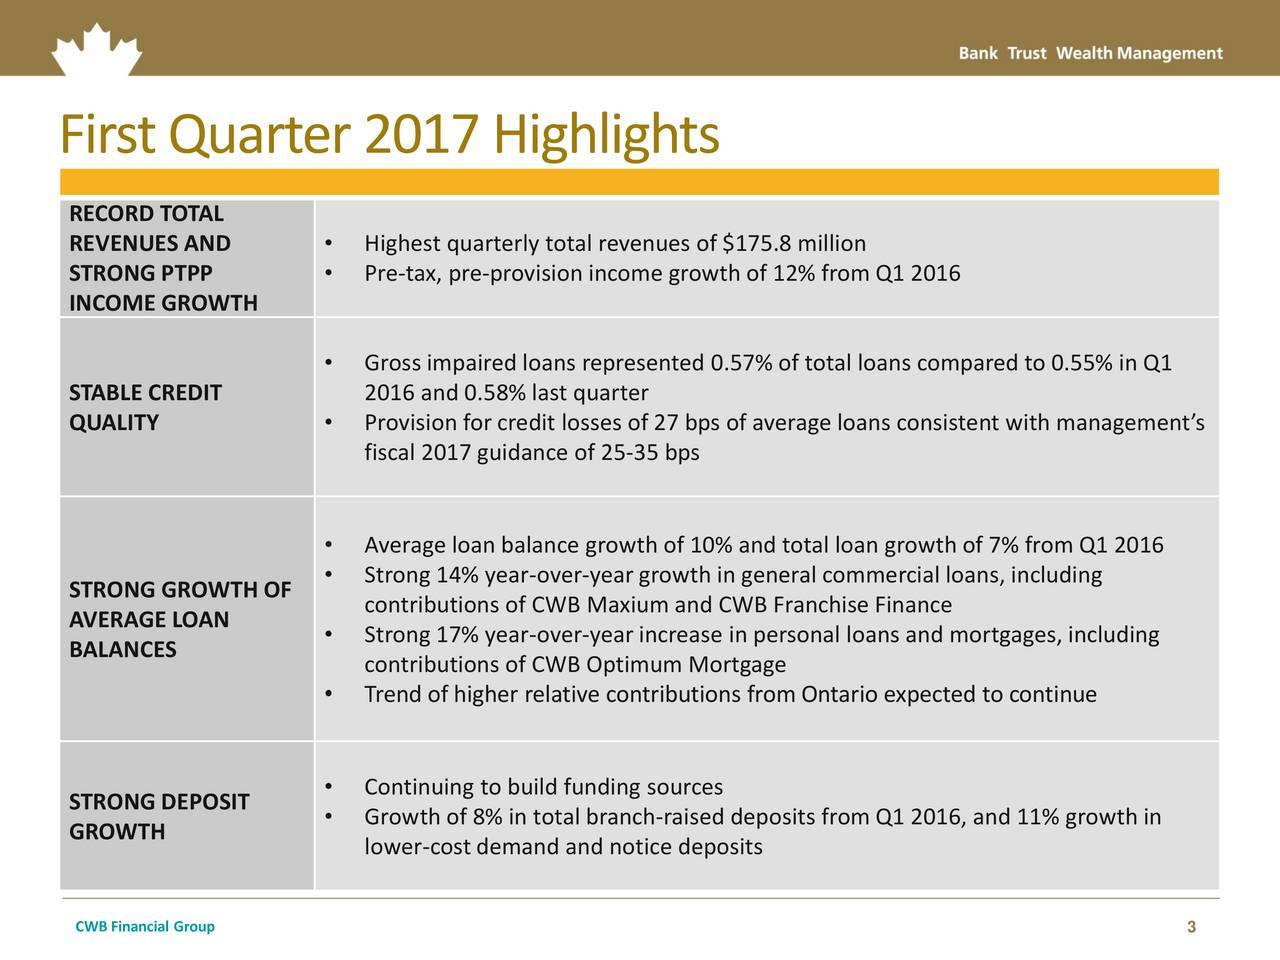 RECORD TOTAL REVENUES AND  Highest quarterly total revenues of $175.8 million STRONG PTPP  Pre-tax, pre-provision income growth of 12% from Q1 2016 INCOME GROWTH Gross impaired loans represented 0.57% of total loans compared to 0.55% in Q1 STABLE CREDIT 2016 and 0.58% last quarter QUALITY  Provision for credit losses of 27 bps of average loans consistent with managements fiscal 2017 guidance of 25-35 bps Average loan balance growth of 10% and total loan growth of 7% from Q1 2016 Strong 14% year-over-yeargrowth in general commercial loans, including STRONG GROWTH OF contributions of CWB Maxium and CWB Franchise Finance AVERAGE LOAN  Strong 17% year-over-yearincrease in personal loans and mortgages, including BALANCES contributions of CWB Optimum Mortgage Trend of higher relative contributions from Ontario expected to continue Continuing to build funding sources STRONG DEPOSIT GROWTH  Growth of 8% in total branch-raised deposits from Q1 2016, and 11% growth in lower-costdemand and notice deposits CWB Financial Group 3